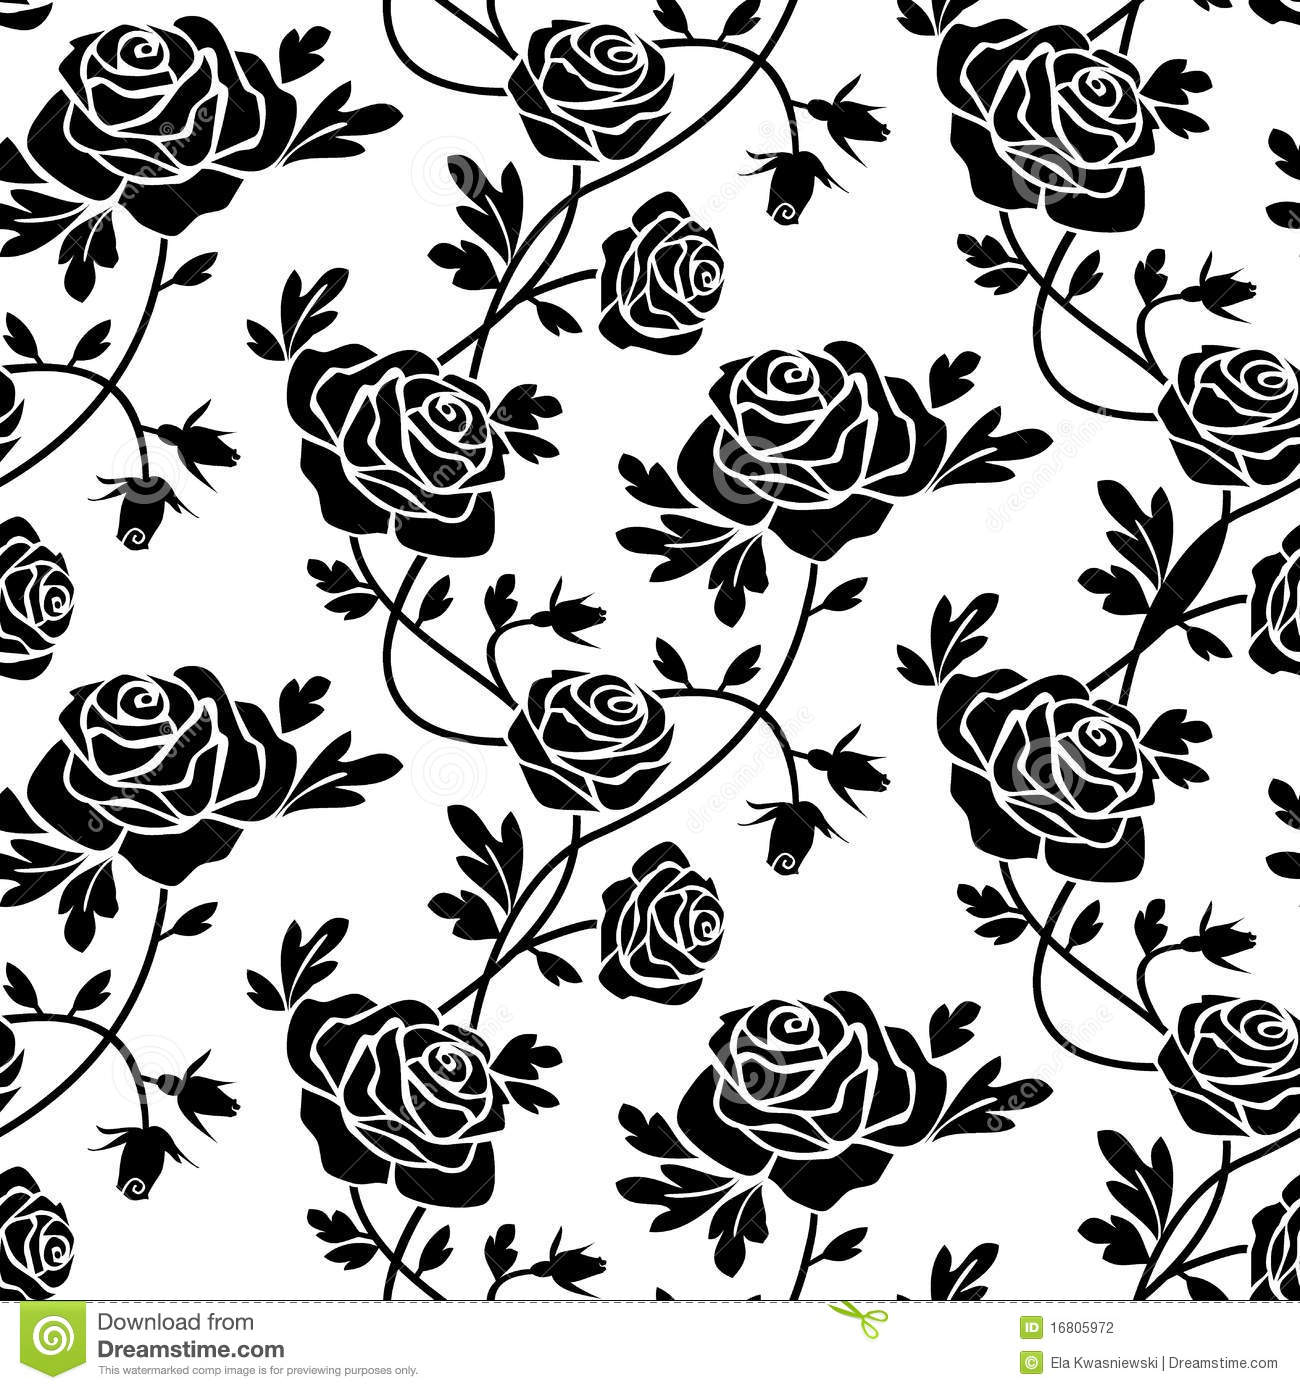 Romantic roses seamless pattern, black flowers at white background ...